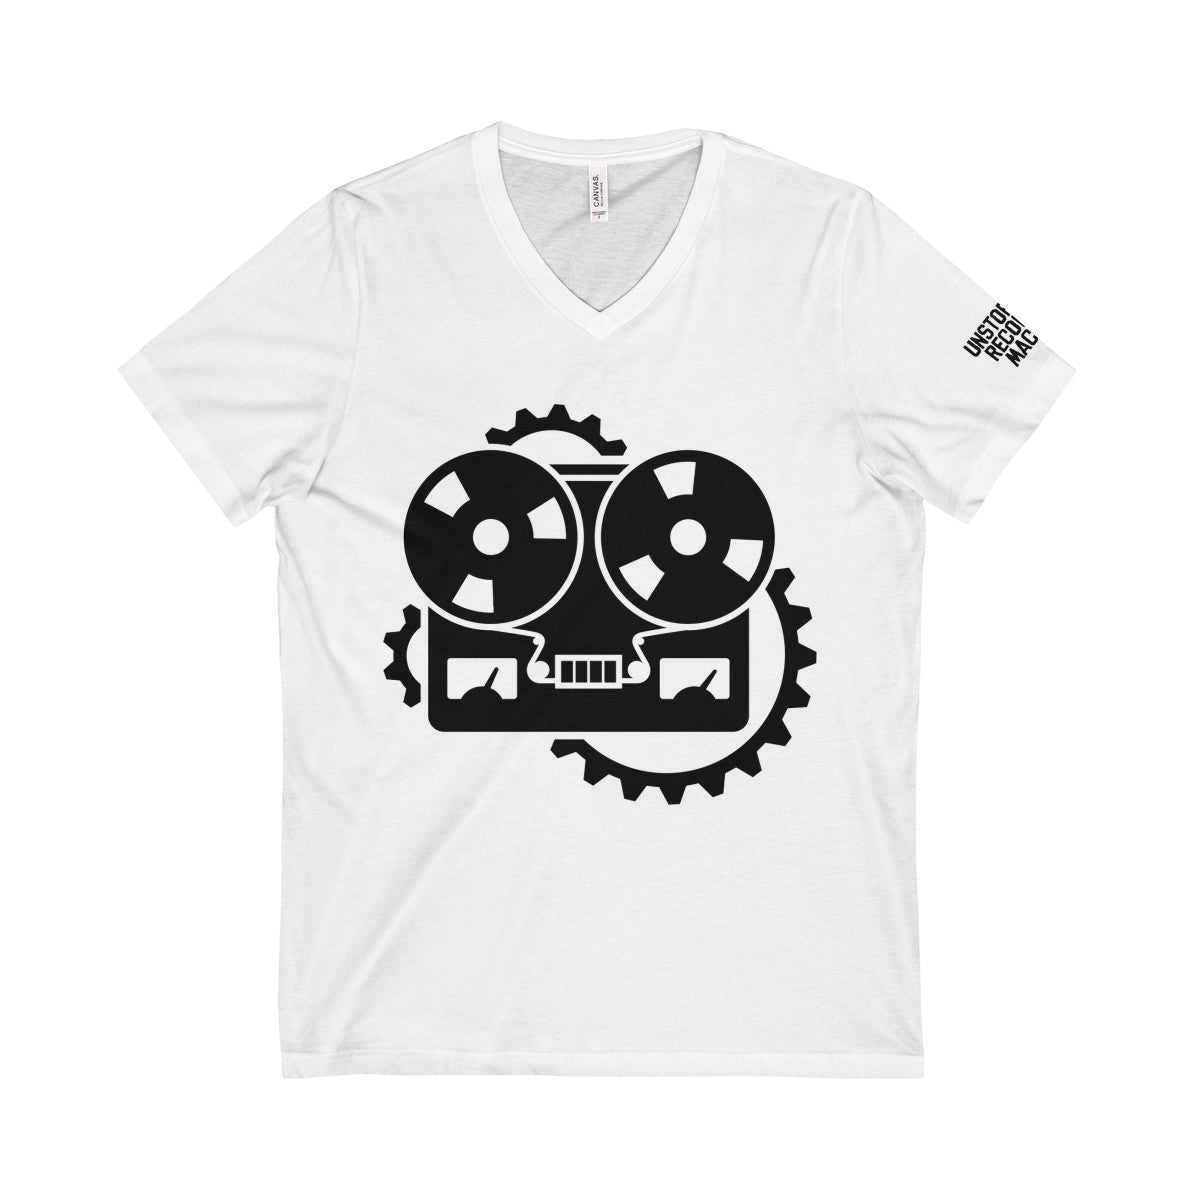 URM Tape Machine V-Neck Tee, Black Print